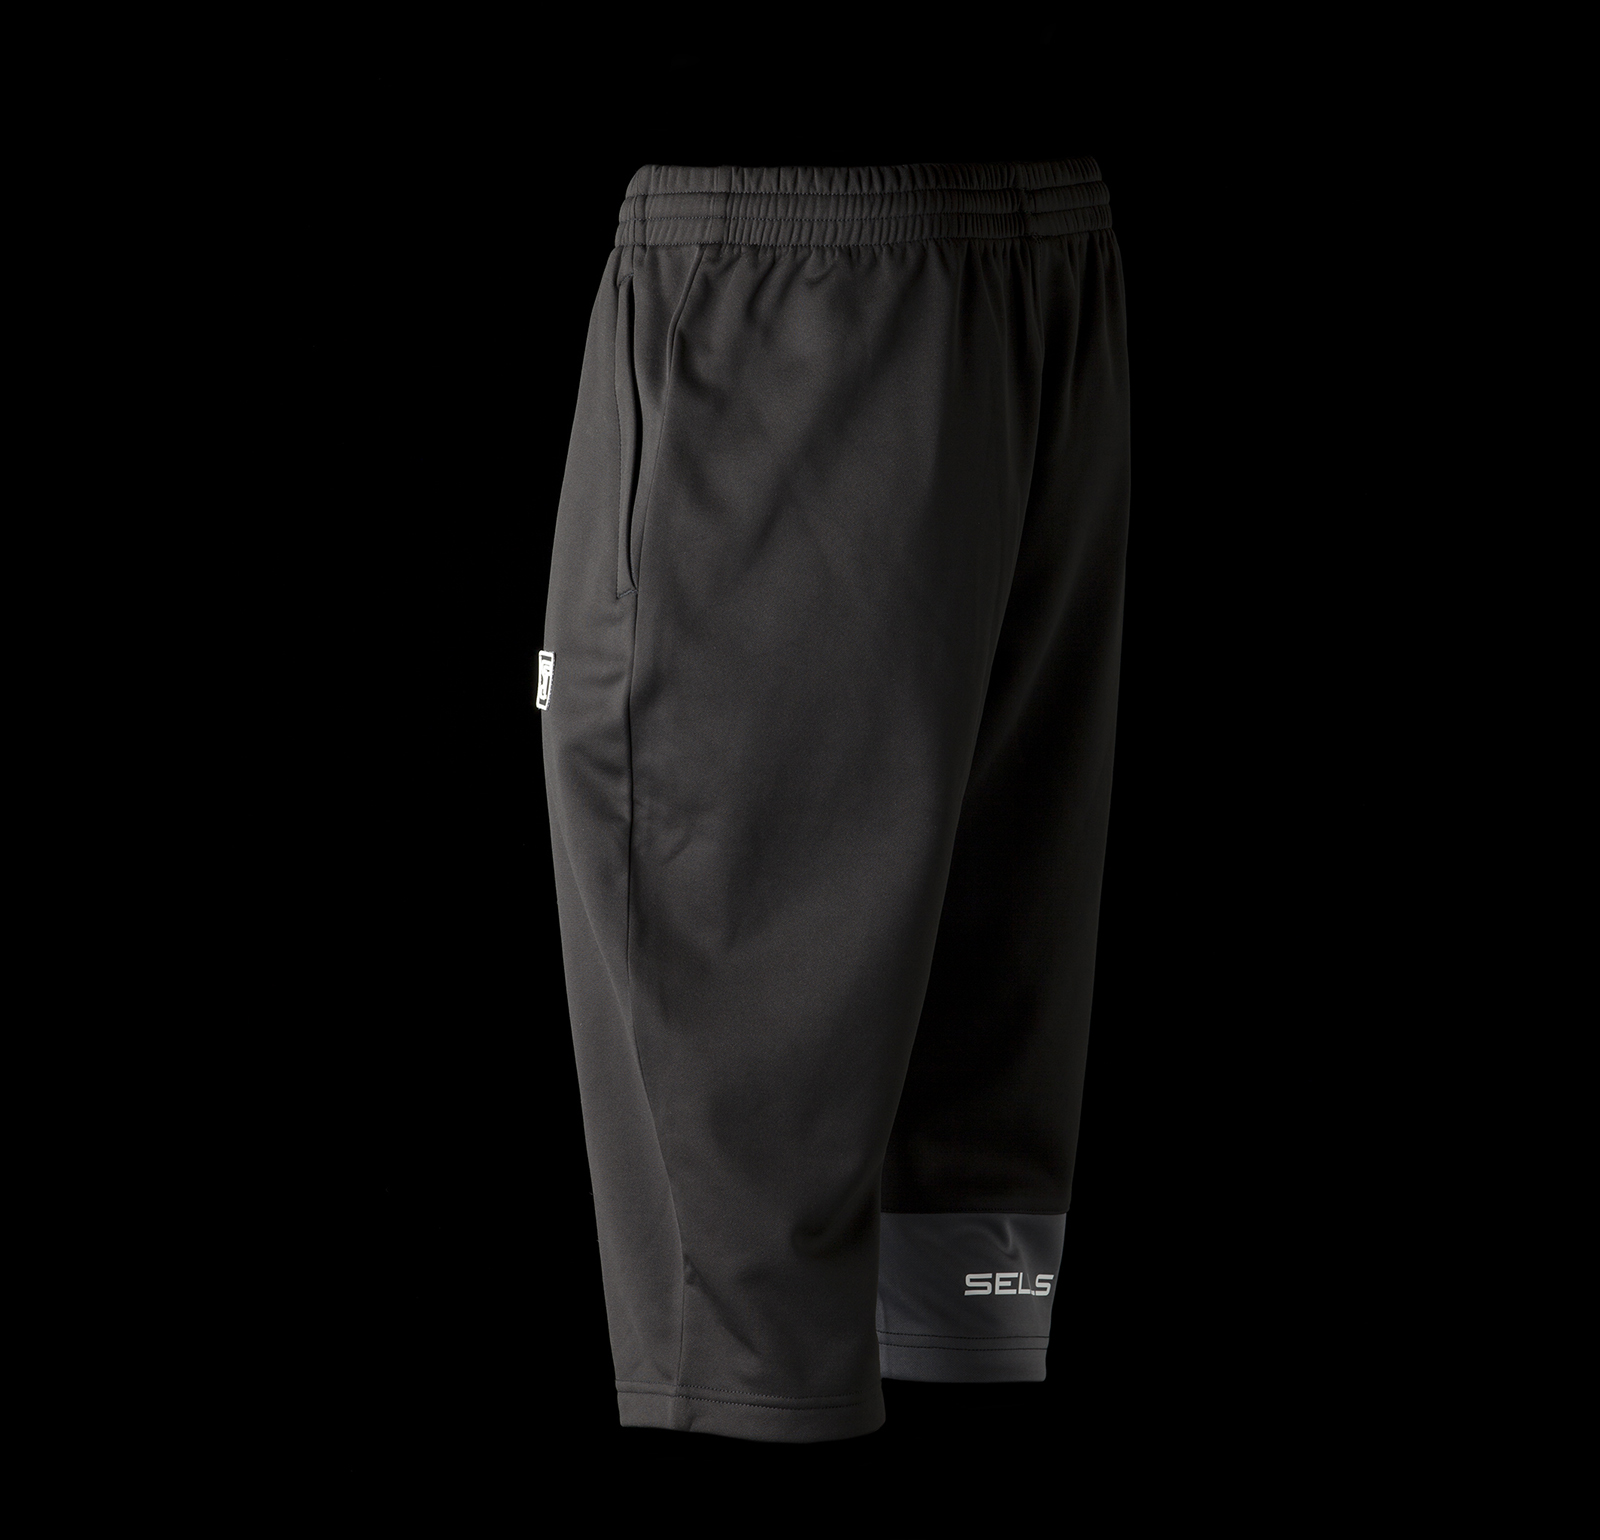 excel-3-4-pant-promo-25